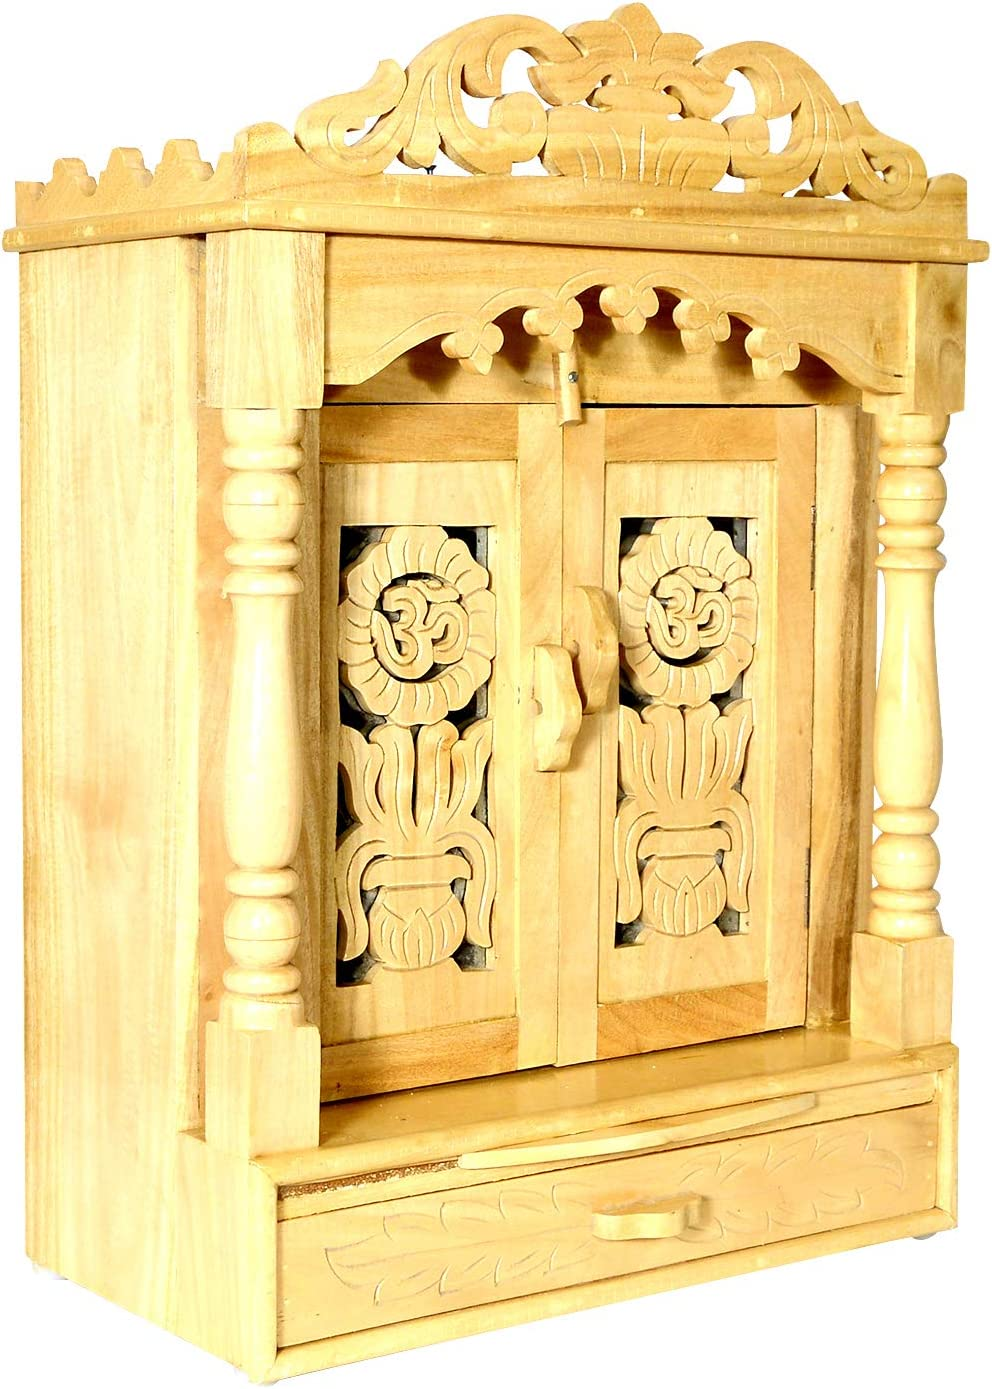 Wooden Temple/Mandir for Home/Temple for Home Wall/Home Temple/Mandir/Pooja Mandir/Pooja Temple/Cabinet Temple/Mandap/Temple for Home/Handicraft Sevan Wooden Temple AMBA AHTP006